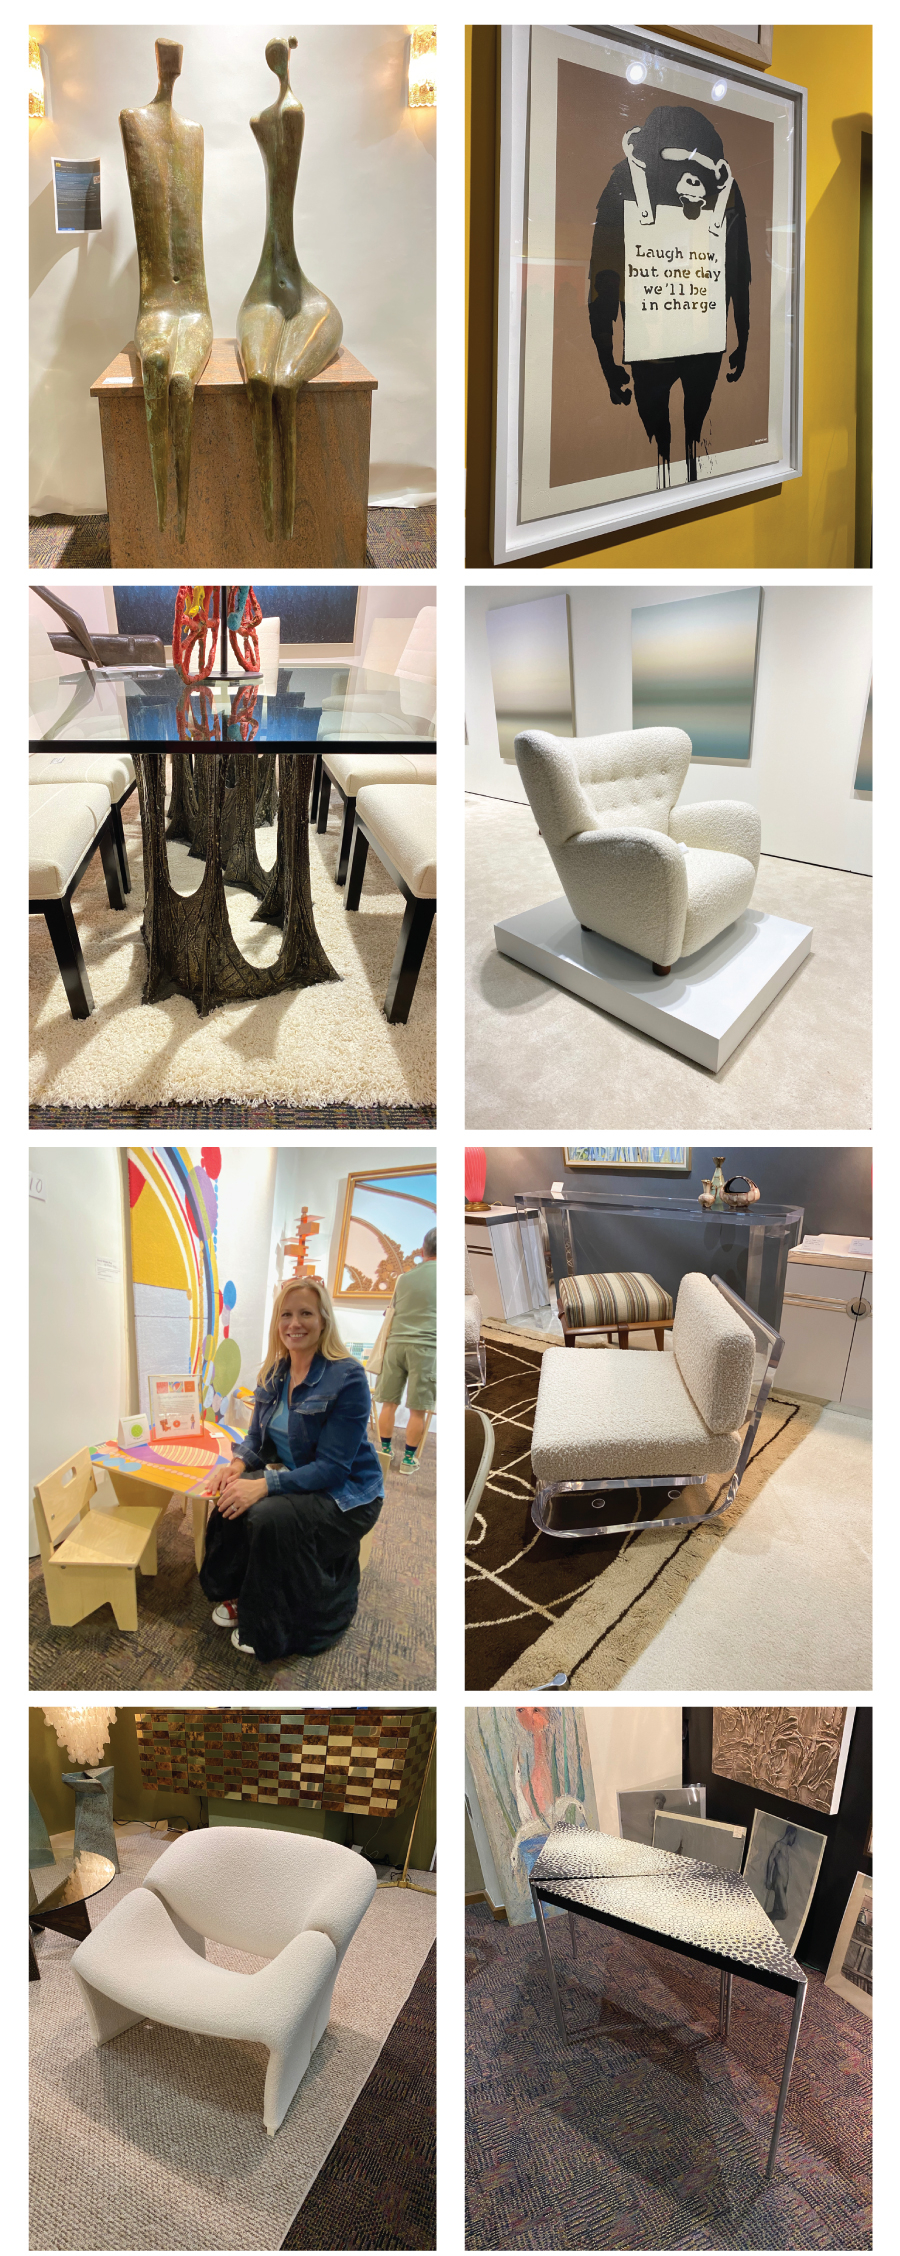 Midcentury modern art and furniture at the Modernism Art Show and Sale - Palm Springs 2020